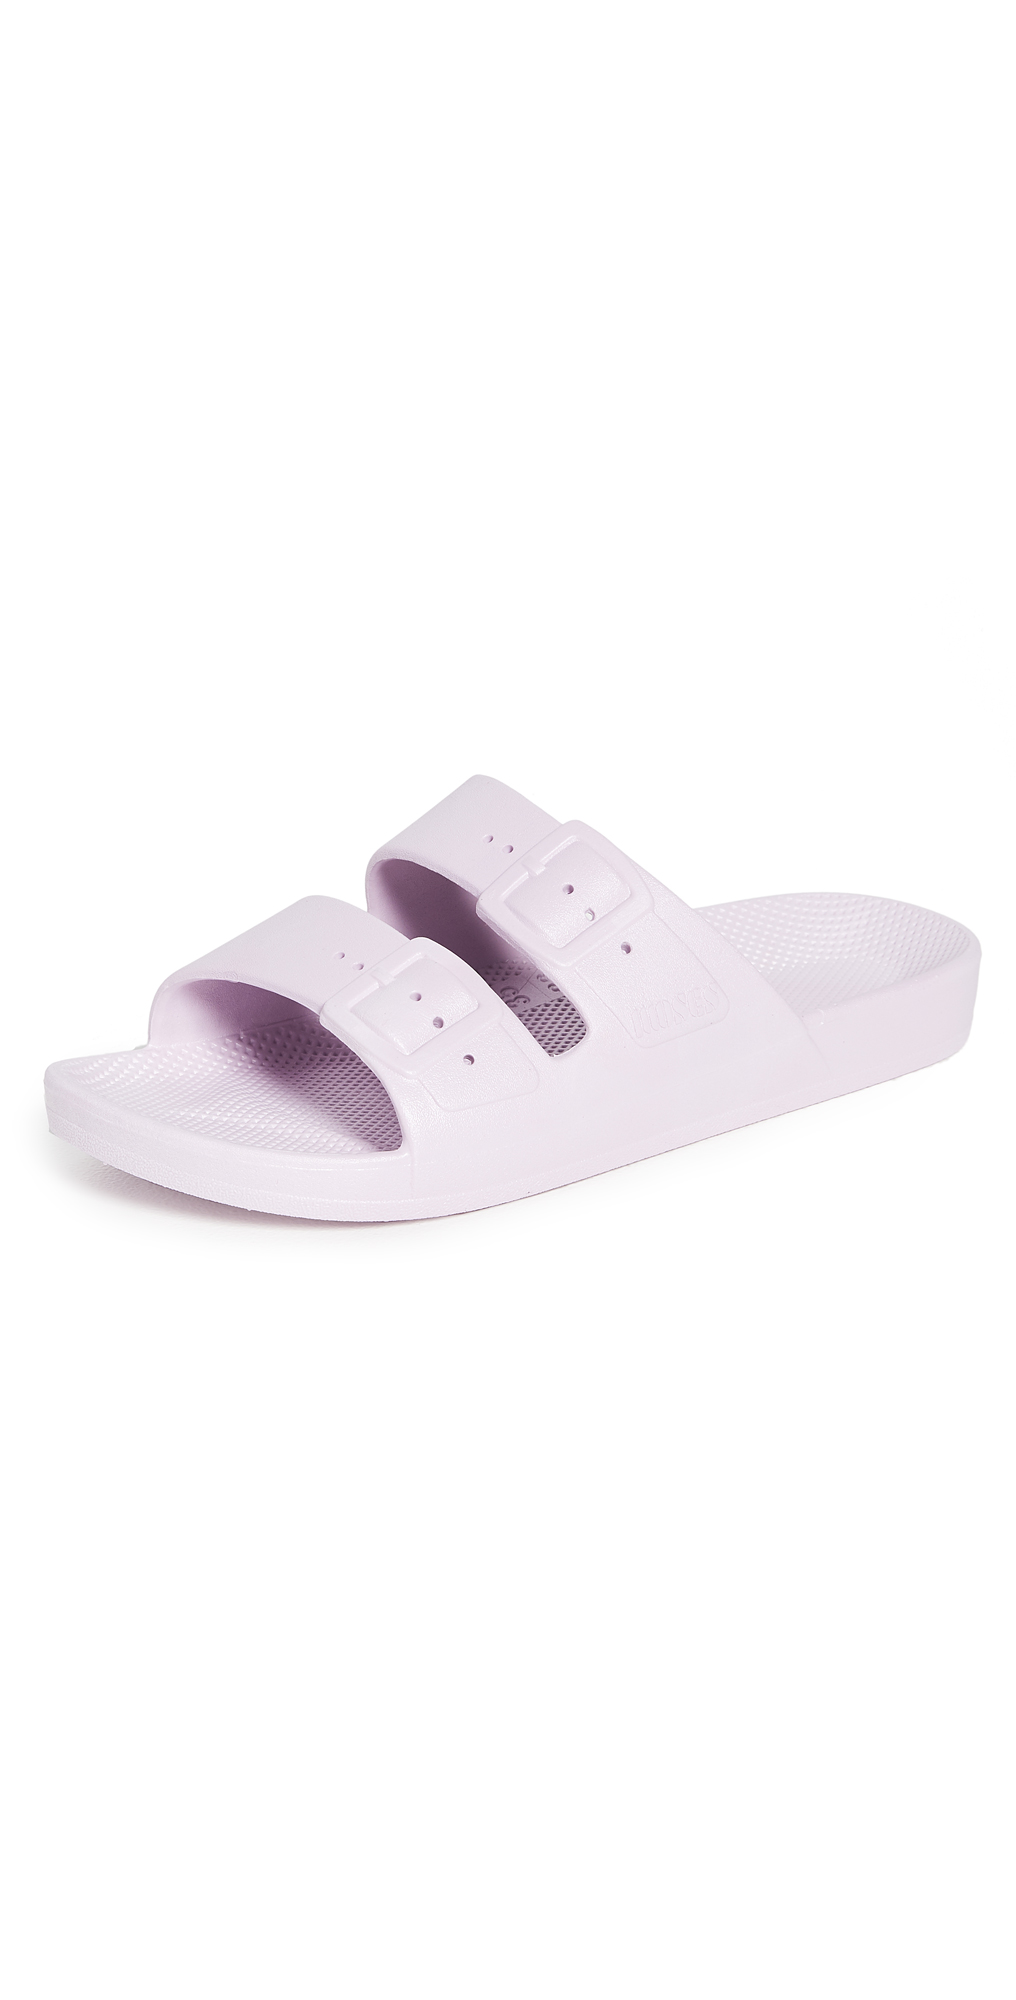 Moses Two Band Slide Sandals